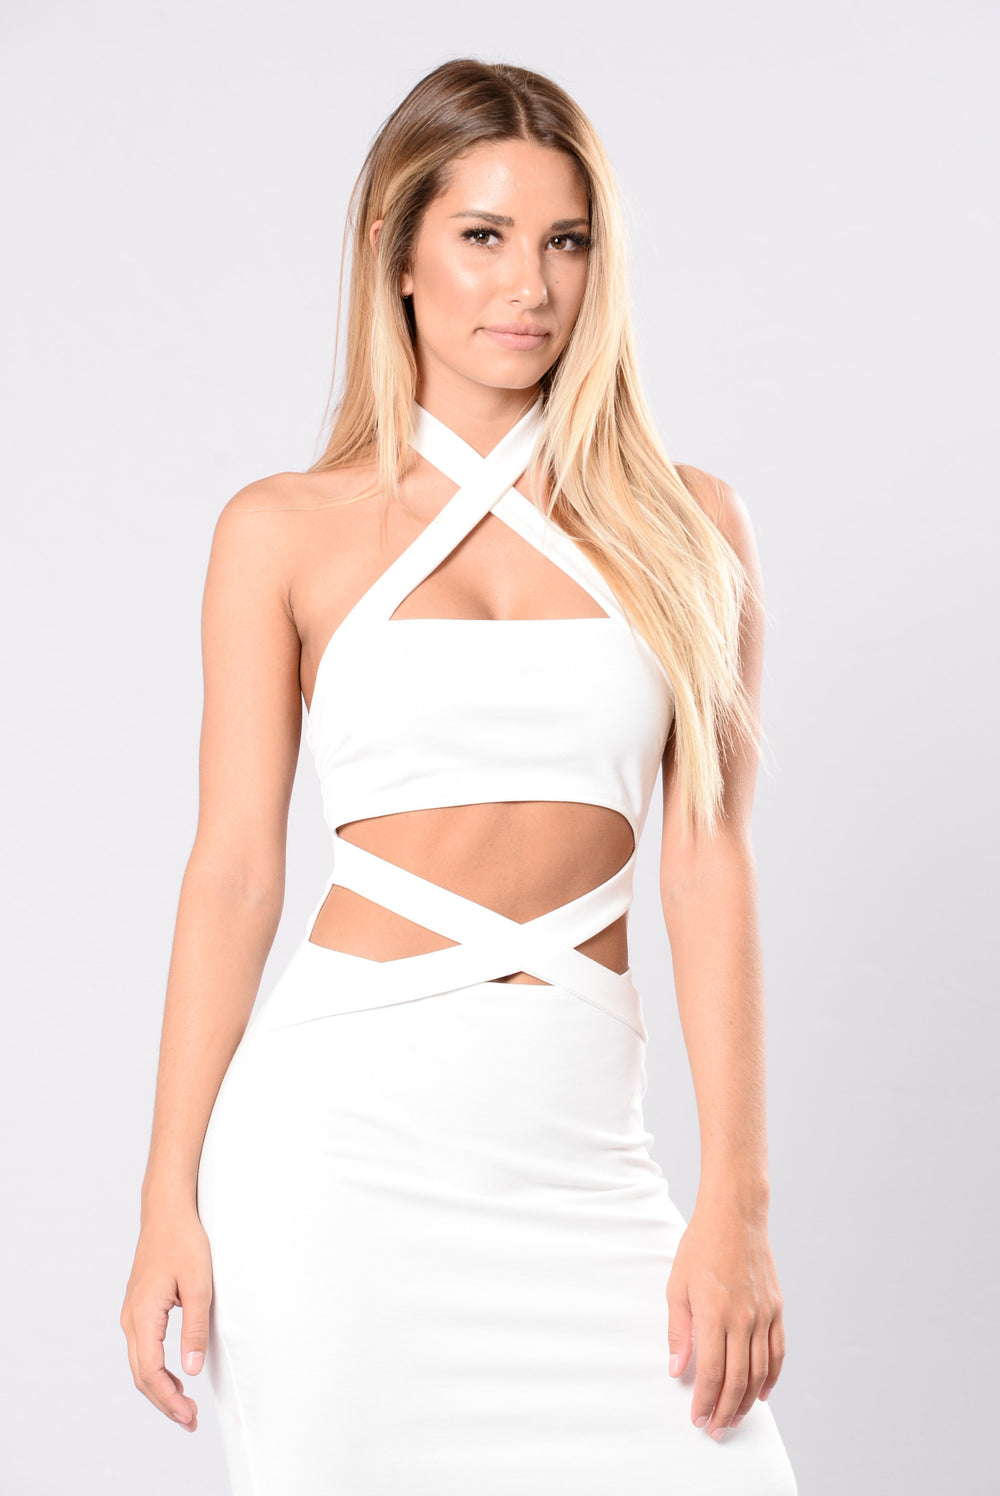 Baby I'm Back With You Dress - Ivory